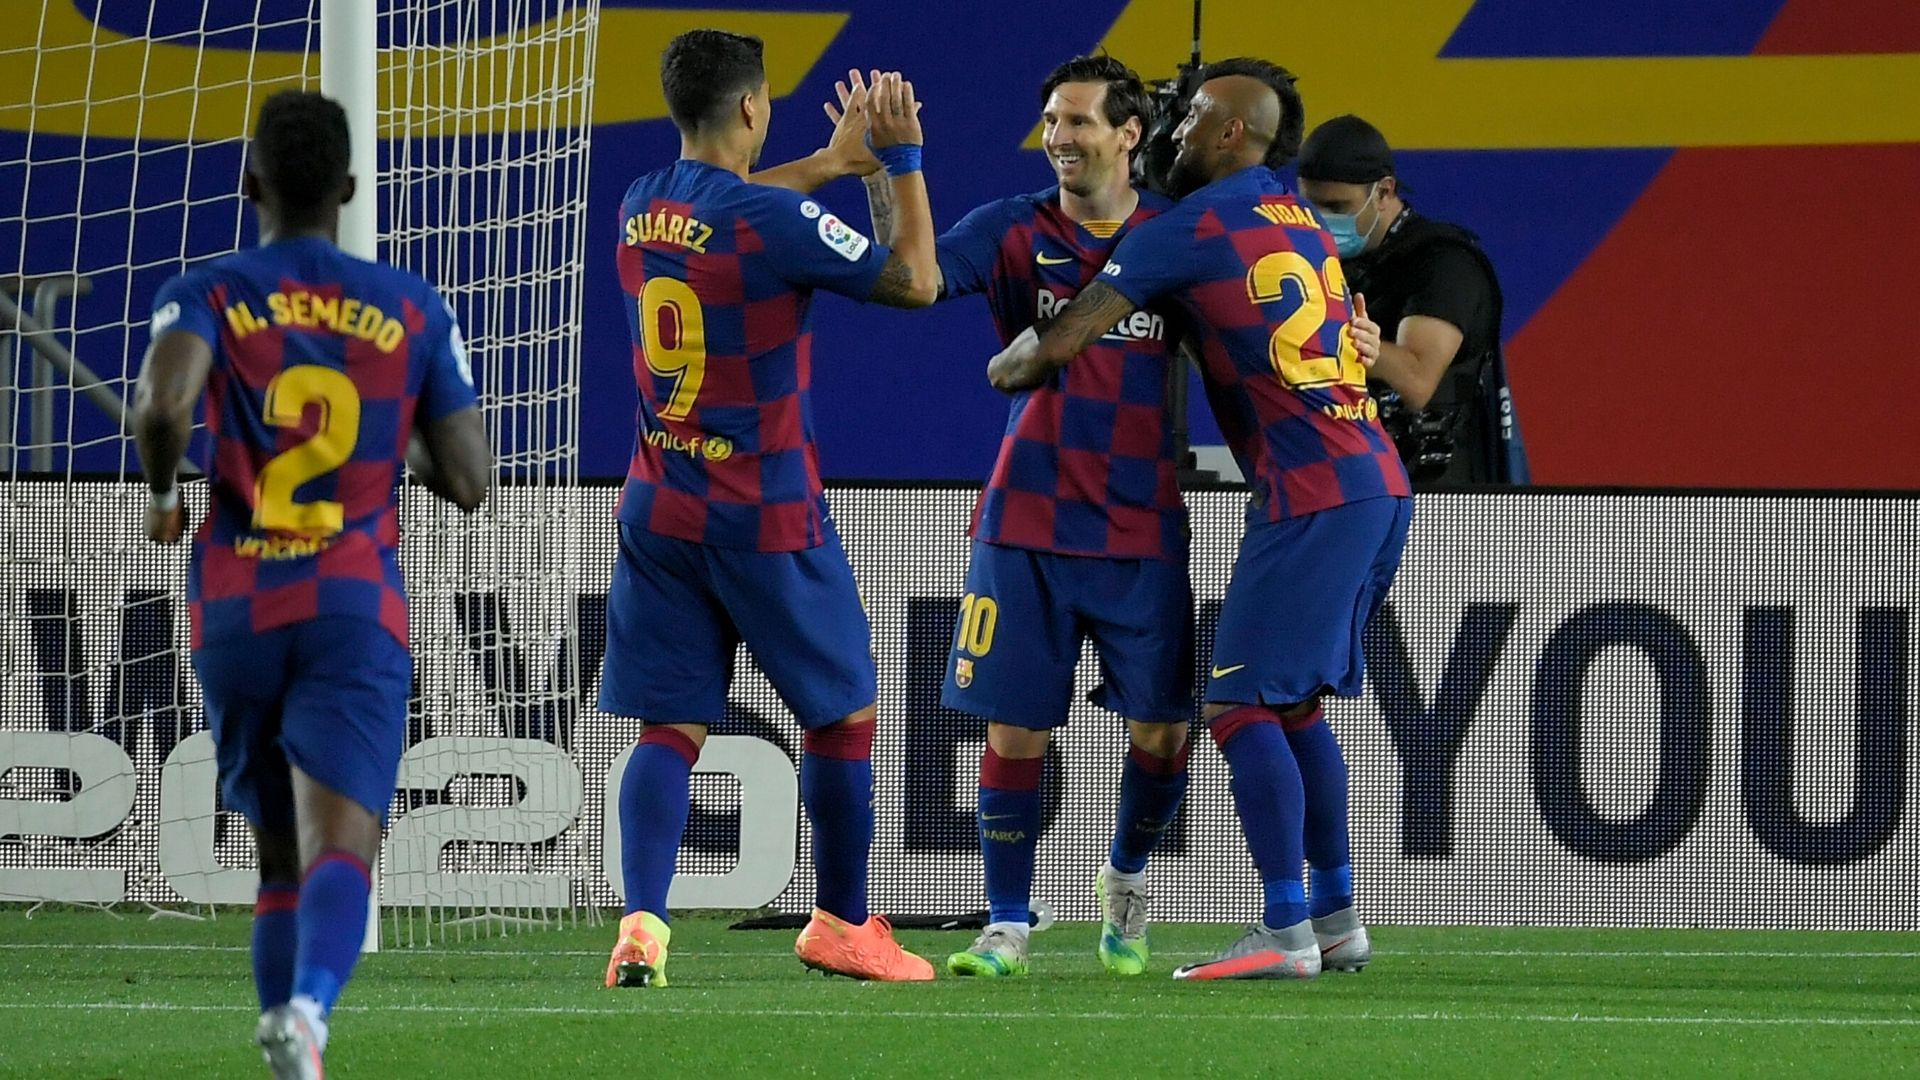 Barcelona 2-0 Leganes: Messi on target in hard-fought win for leaders